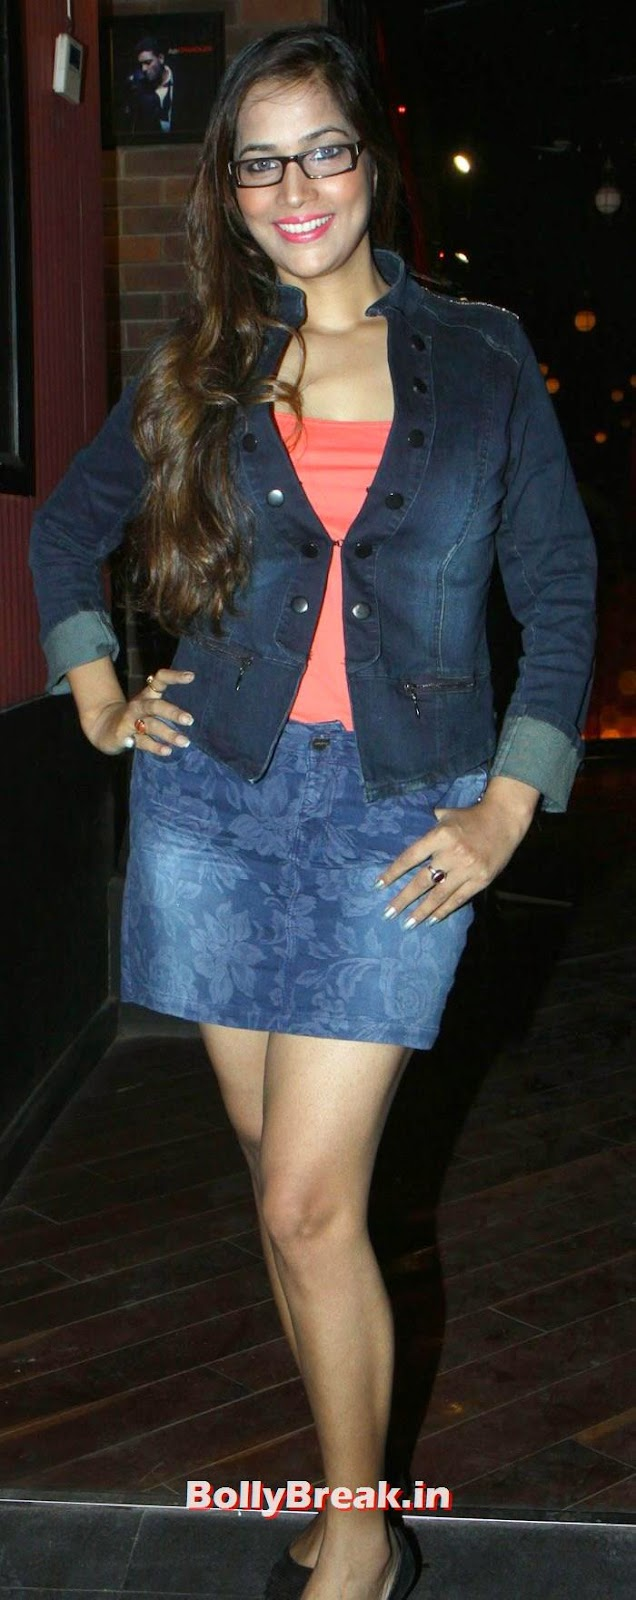 Tanisha Singh, Brinda Parekh, Tanisha Singh at Rehman Khan's Stand Up Comedy Show